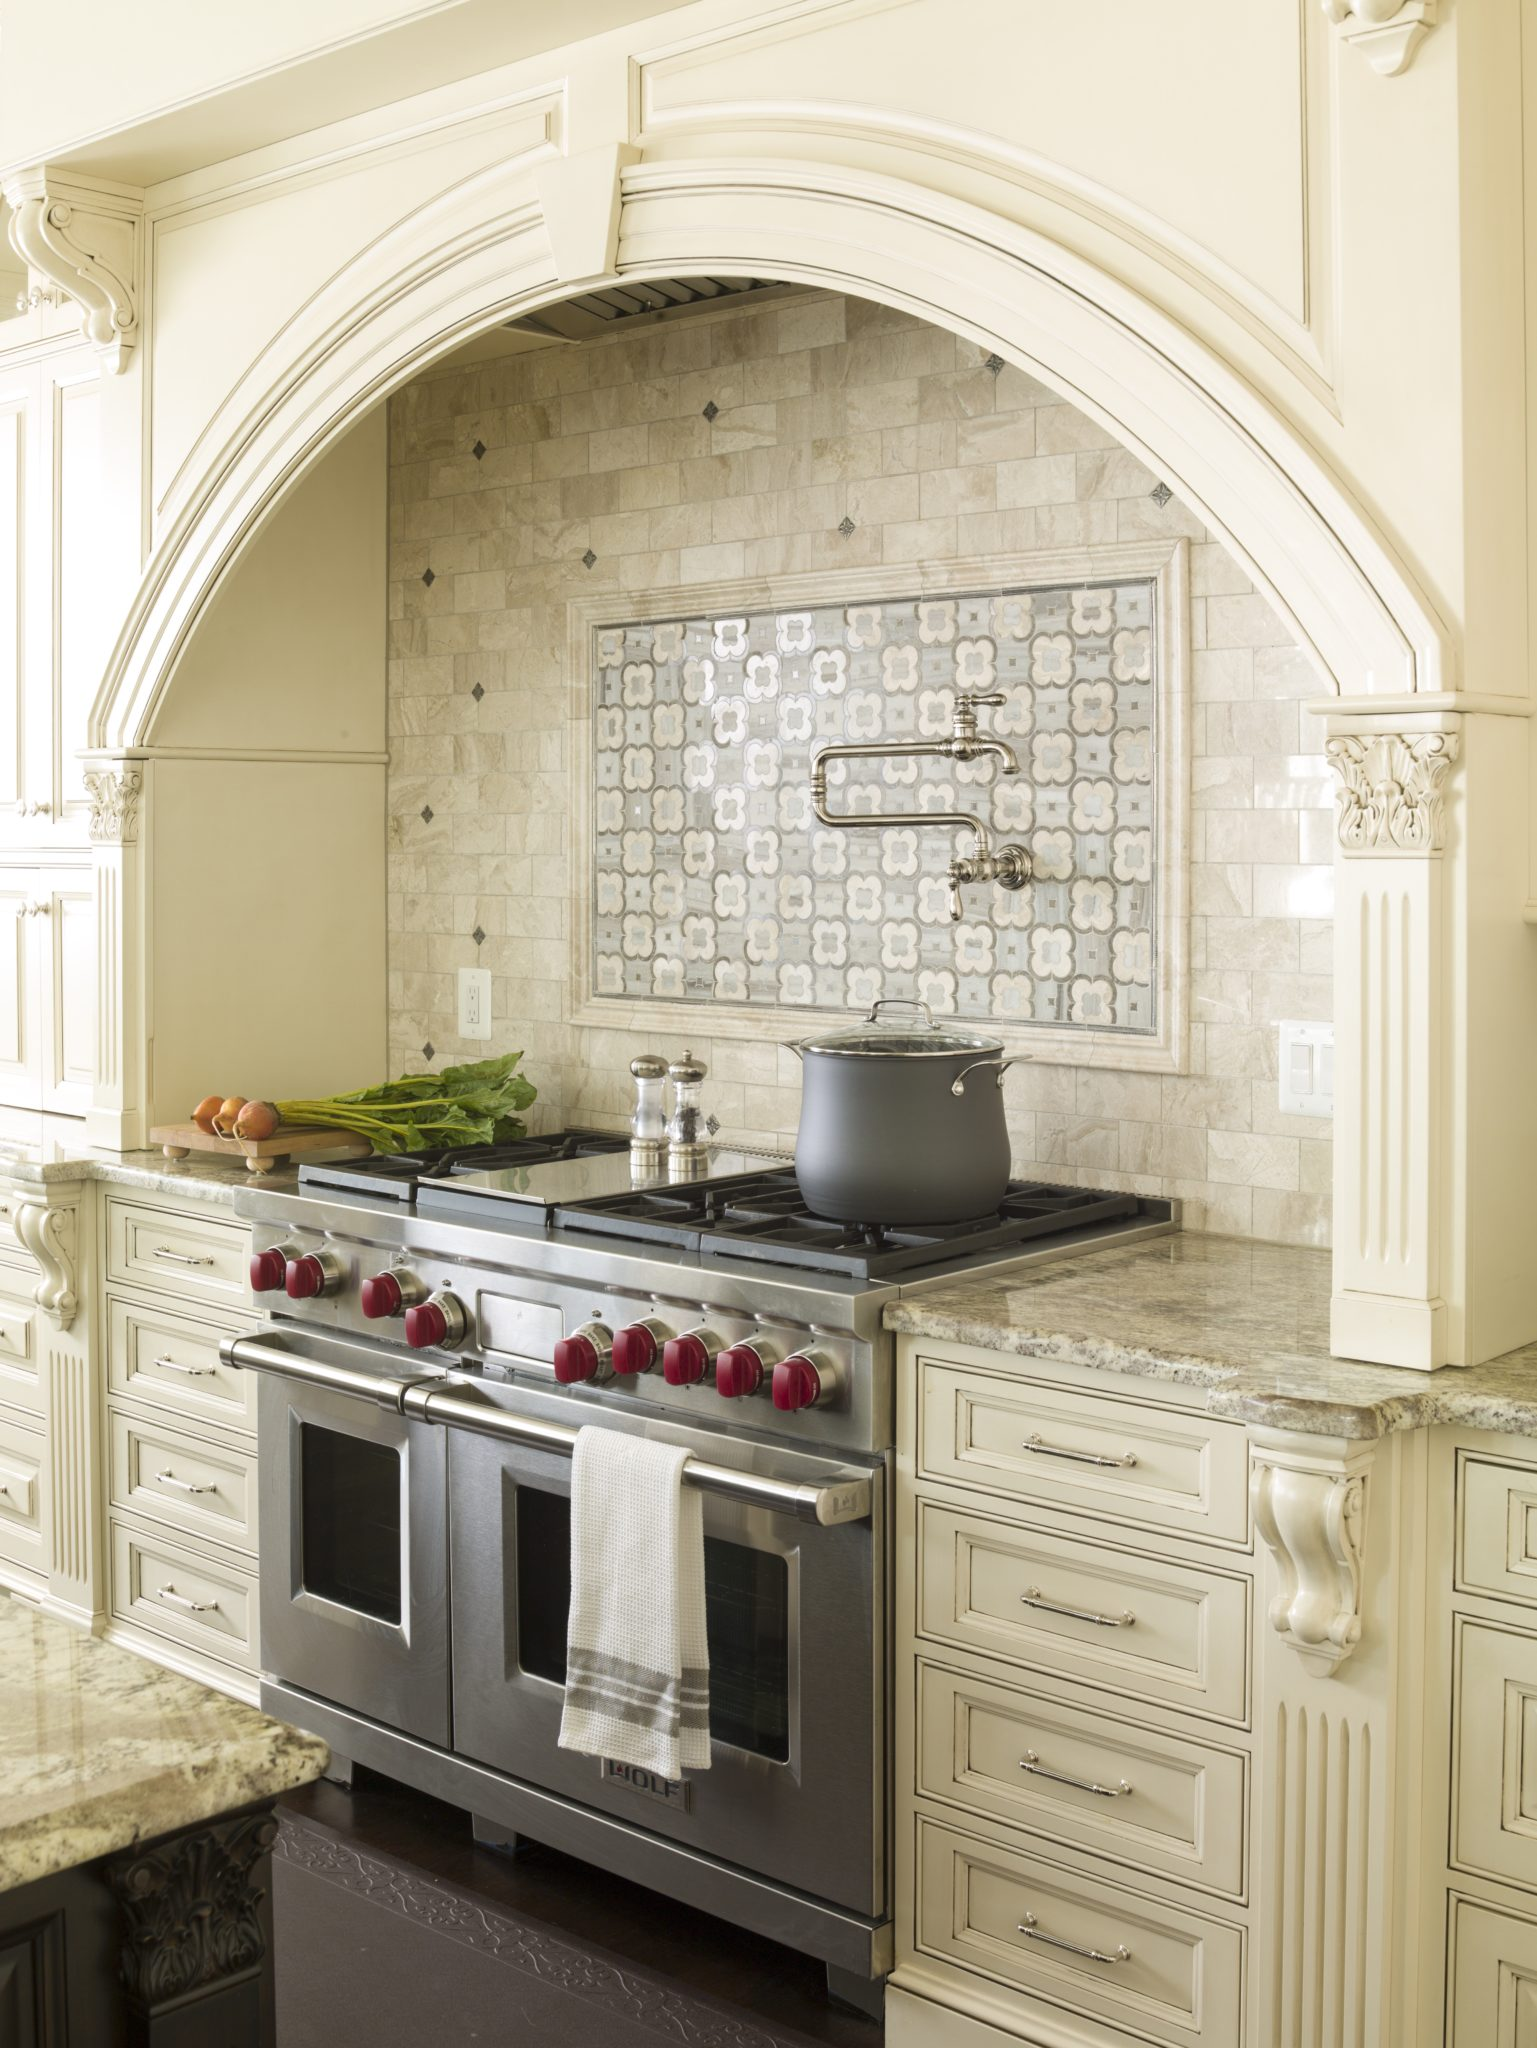 Kitchen Stovetop Cabinet & Tile Detail - Great Falls, Northern Virginia by Paula Grace Designs – Signature Grace